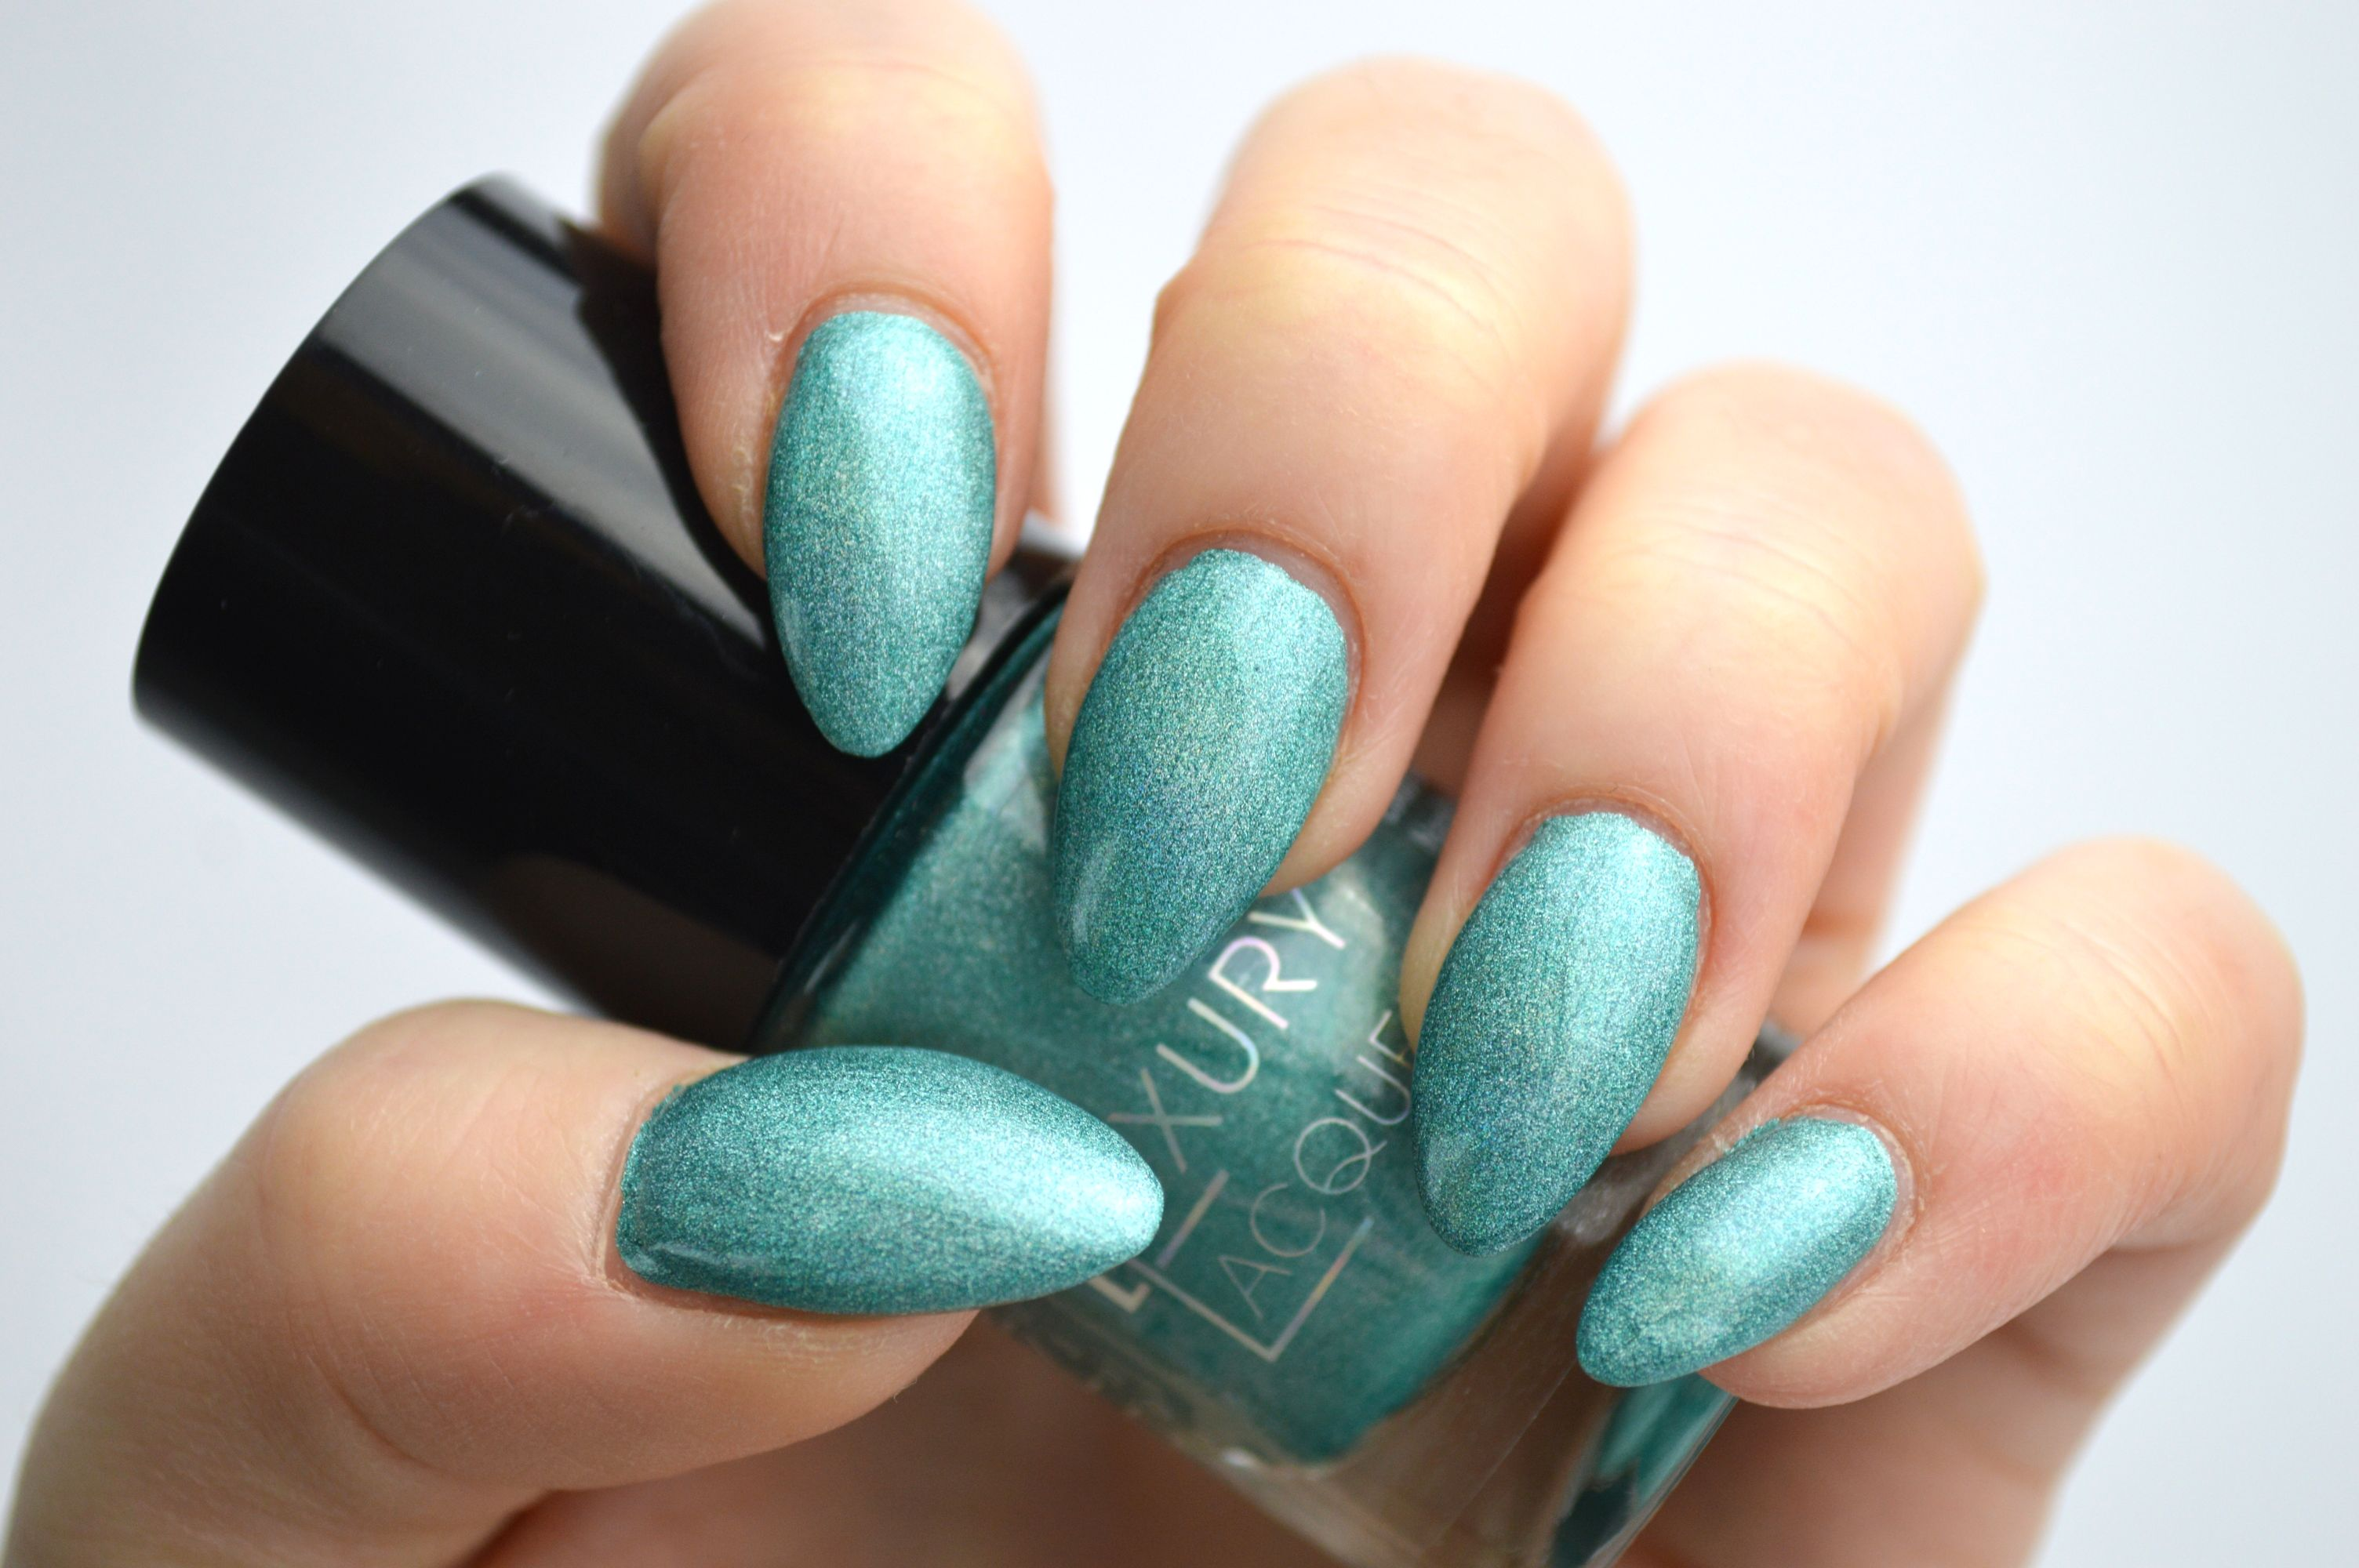 Catrice_Holomania_Holo_in_One